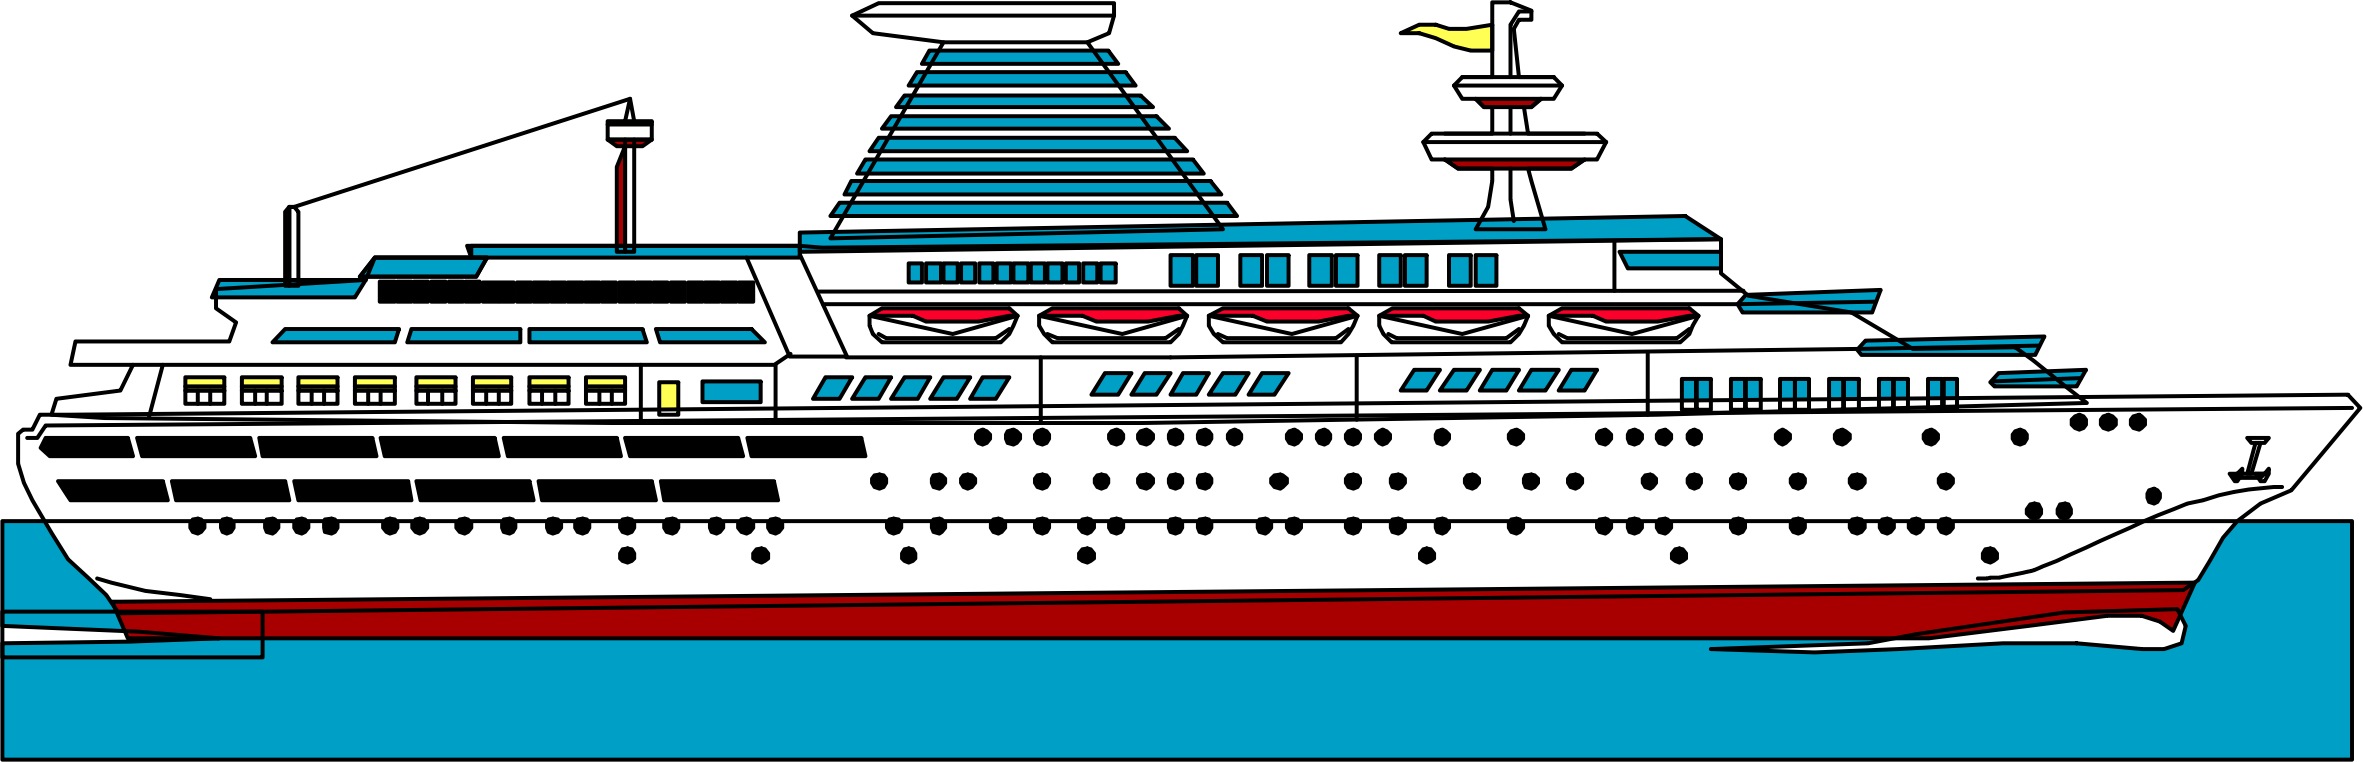 freeuse stock Yacht clipart cruise ship. Icons png free and